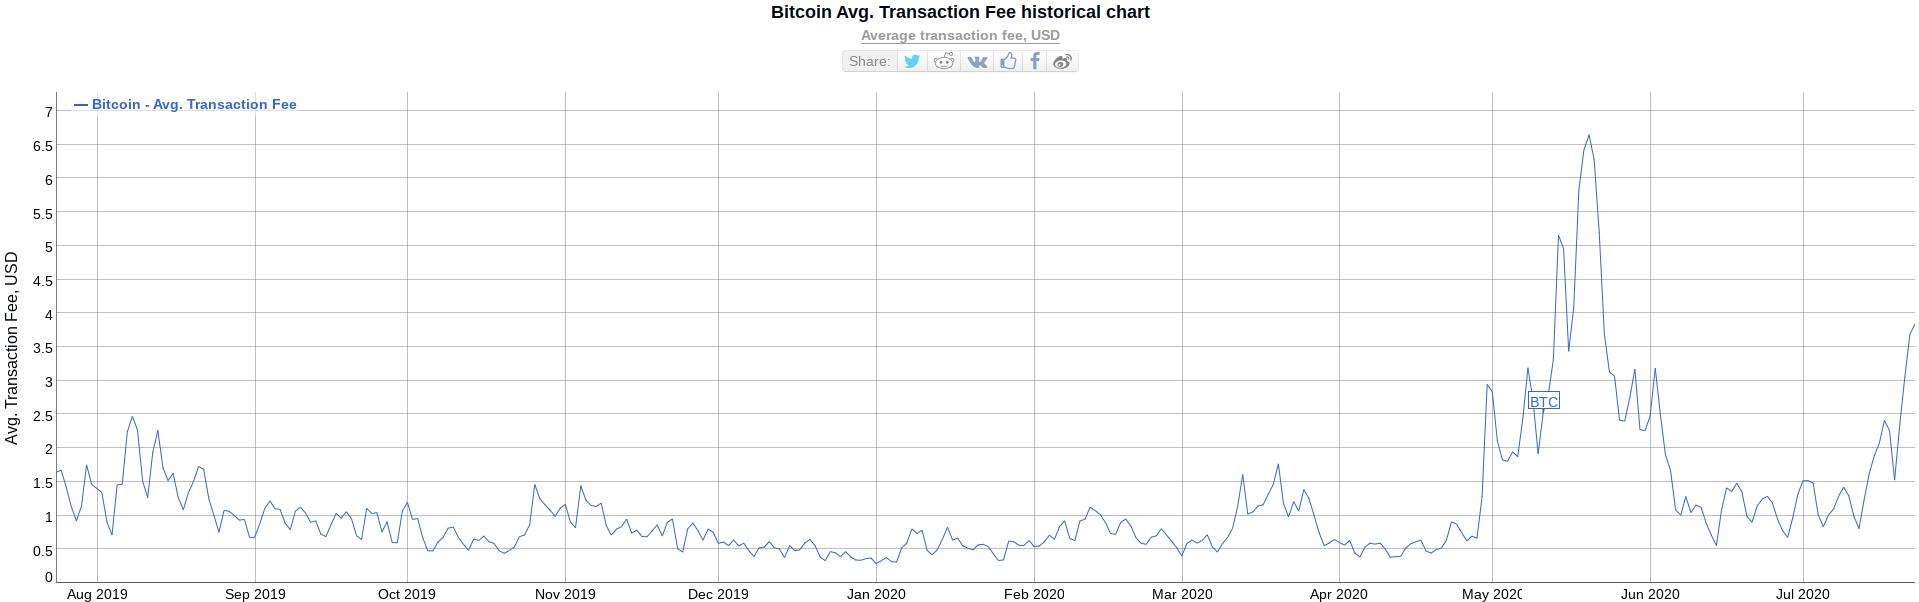 Bitcoin fees pulled higher by DeFi-mania